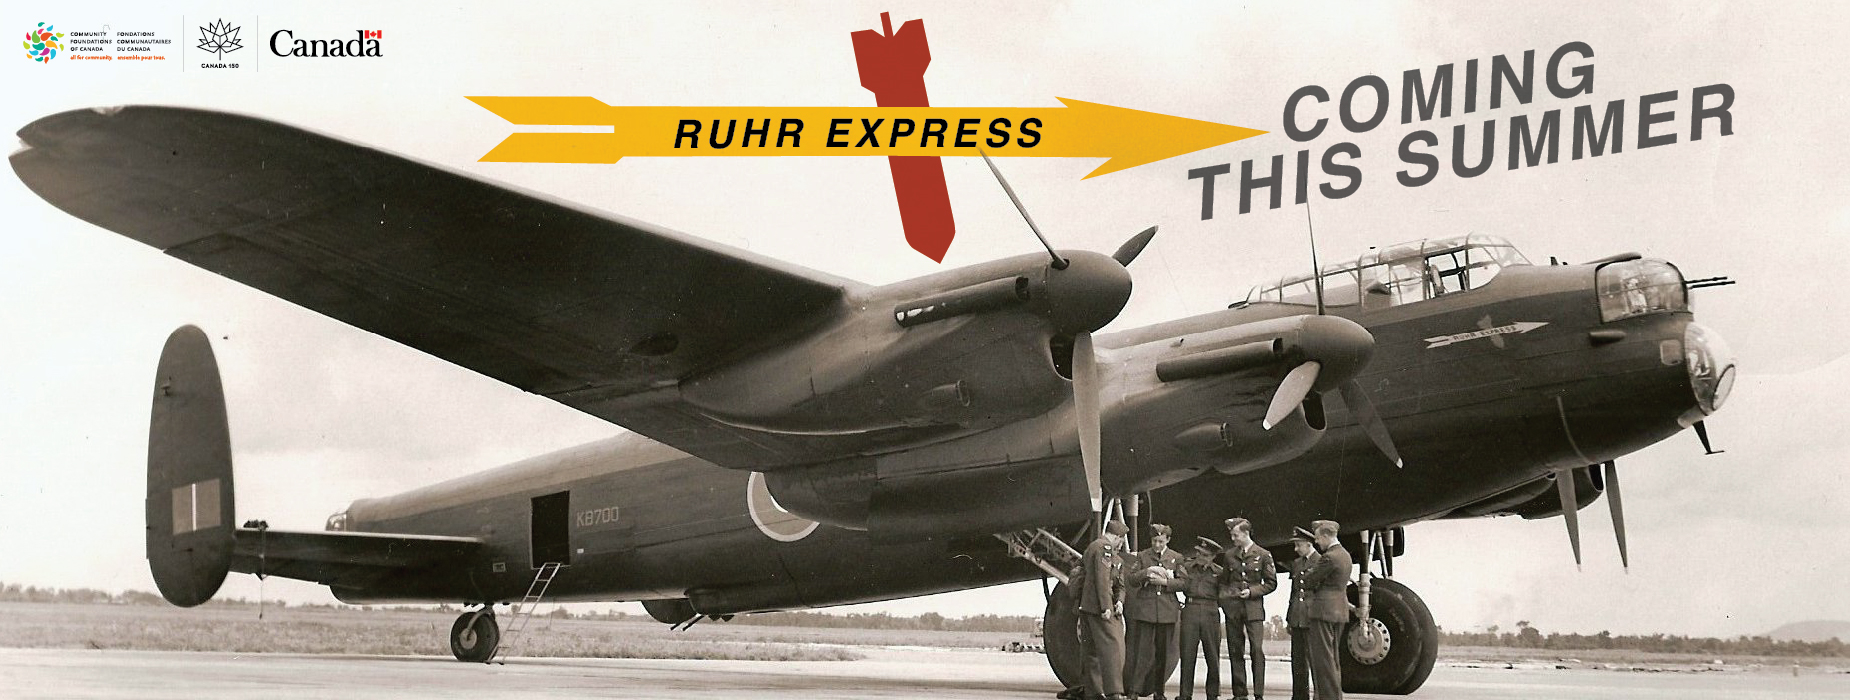 Poster for - Ruhr Express Lancaster